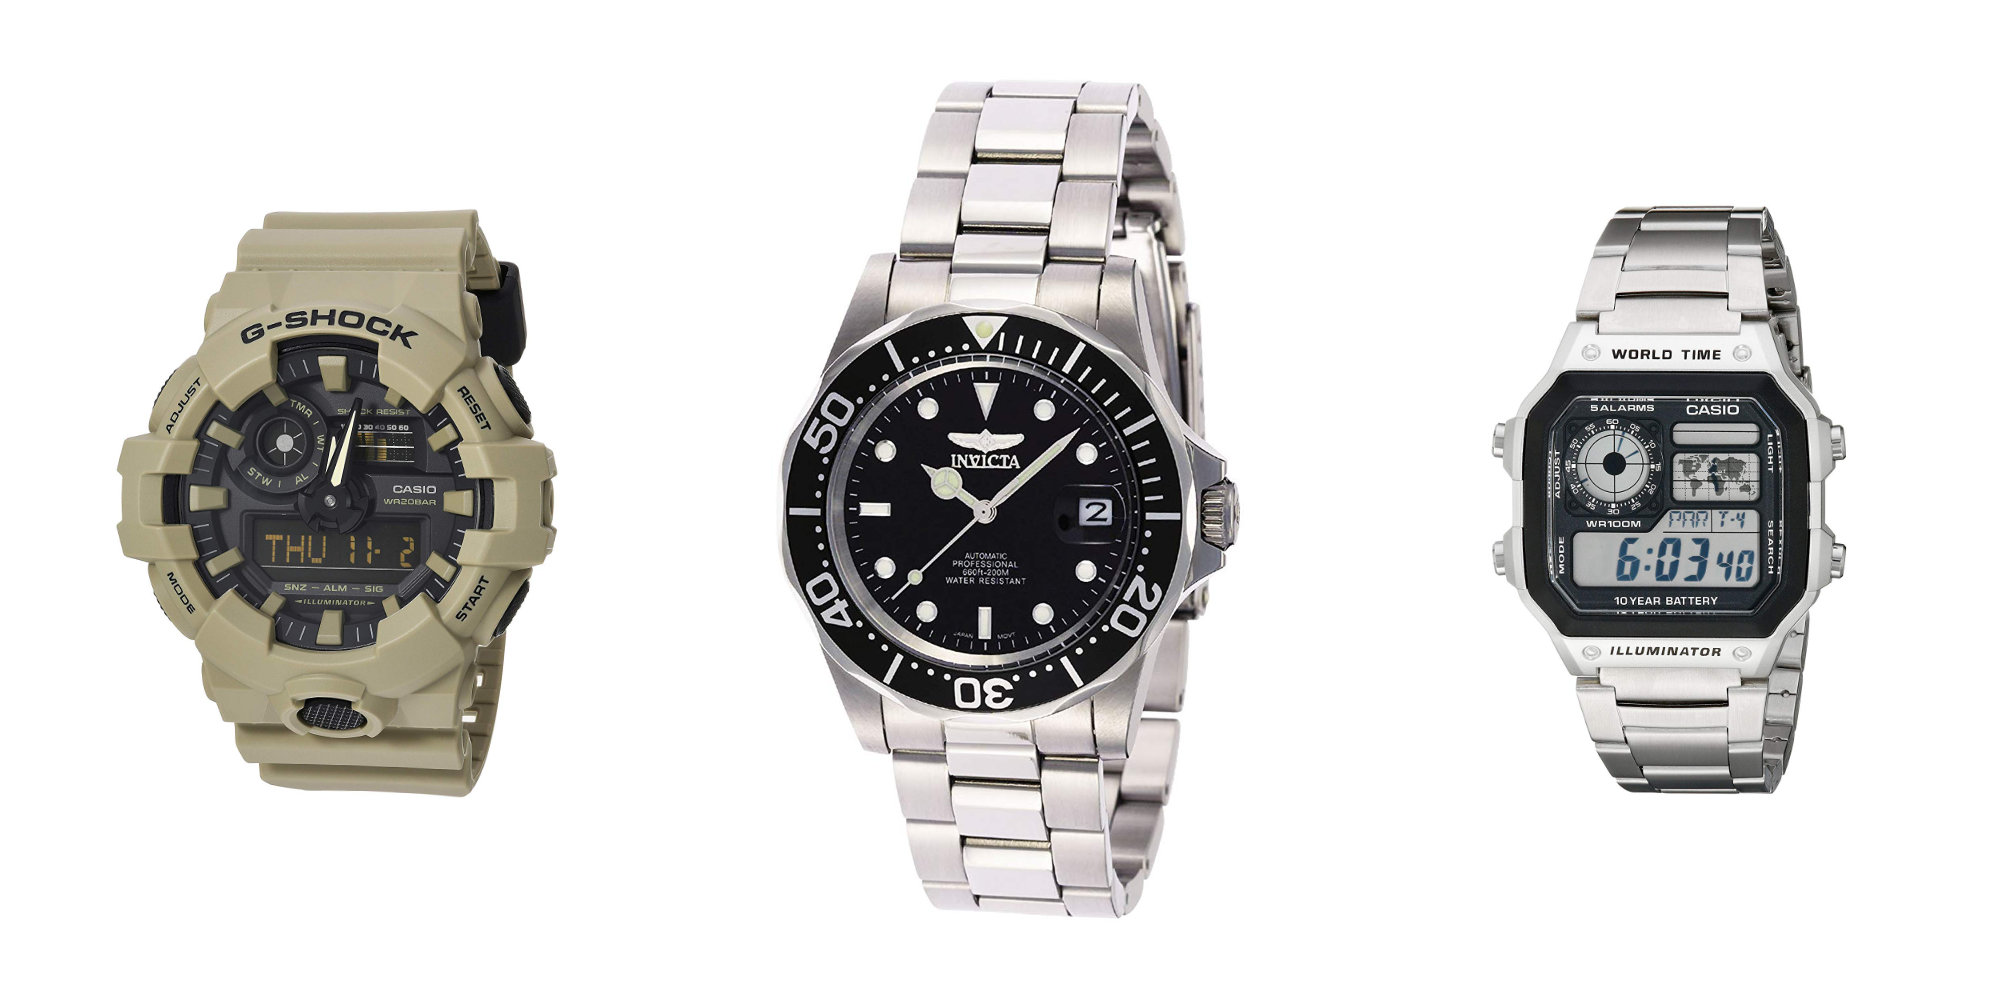 This Invicta Pro Diver Watch offers 200-meter water resistance for $49.50 (Reg. $80), more from $21